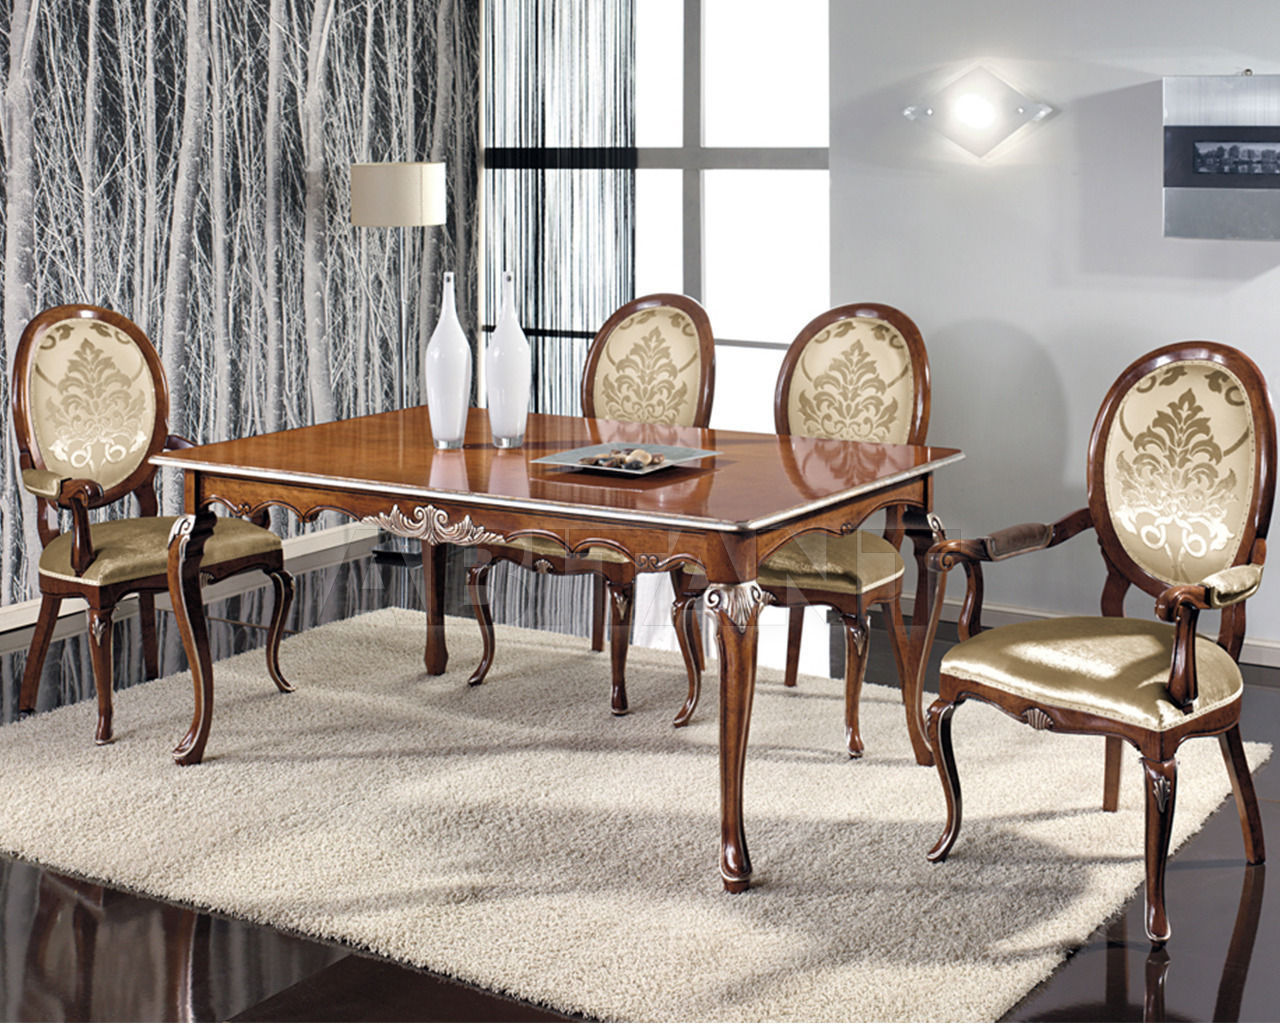 Buy Dining table Seven Sedie Reproductions Coloniali 0311TA02 C1